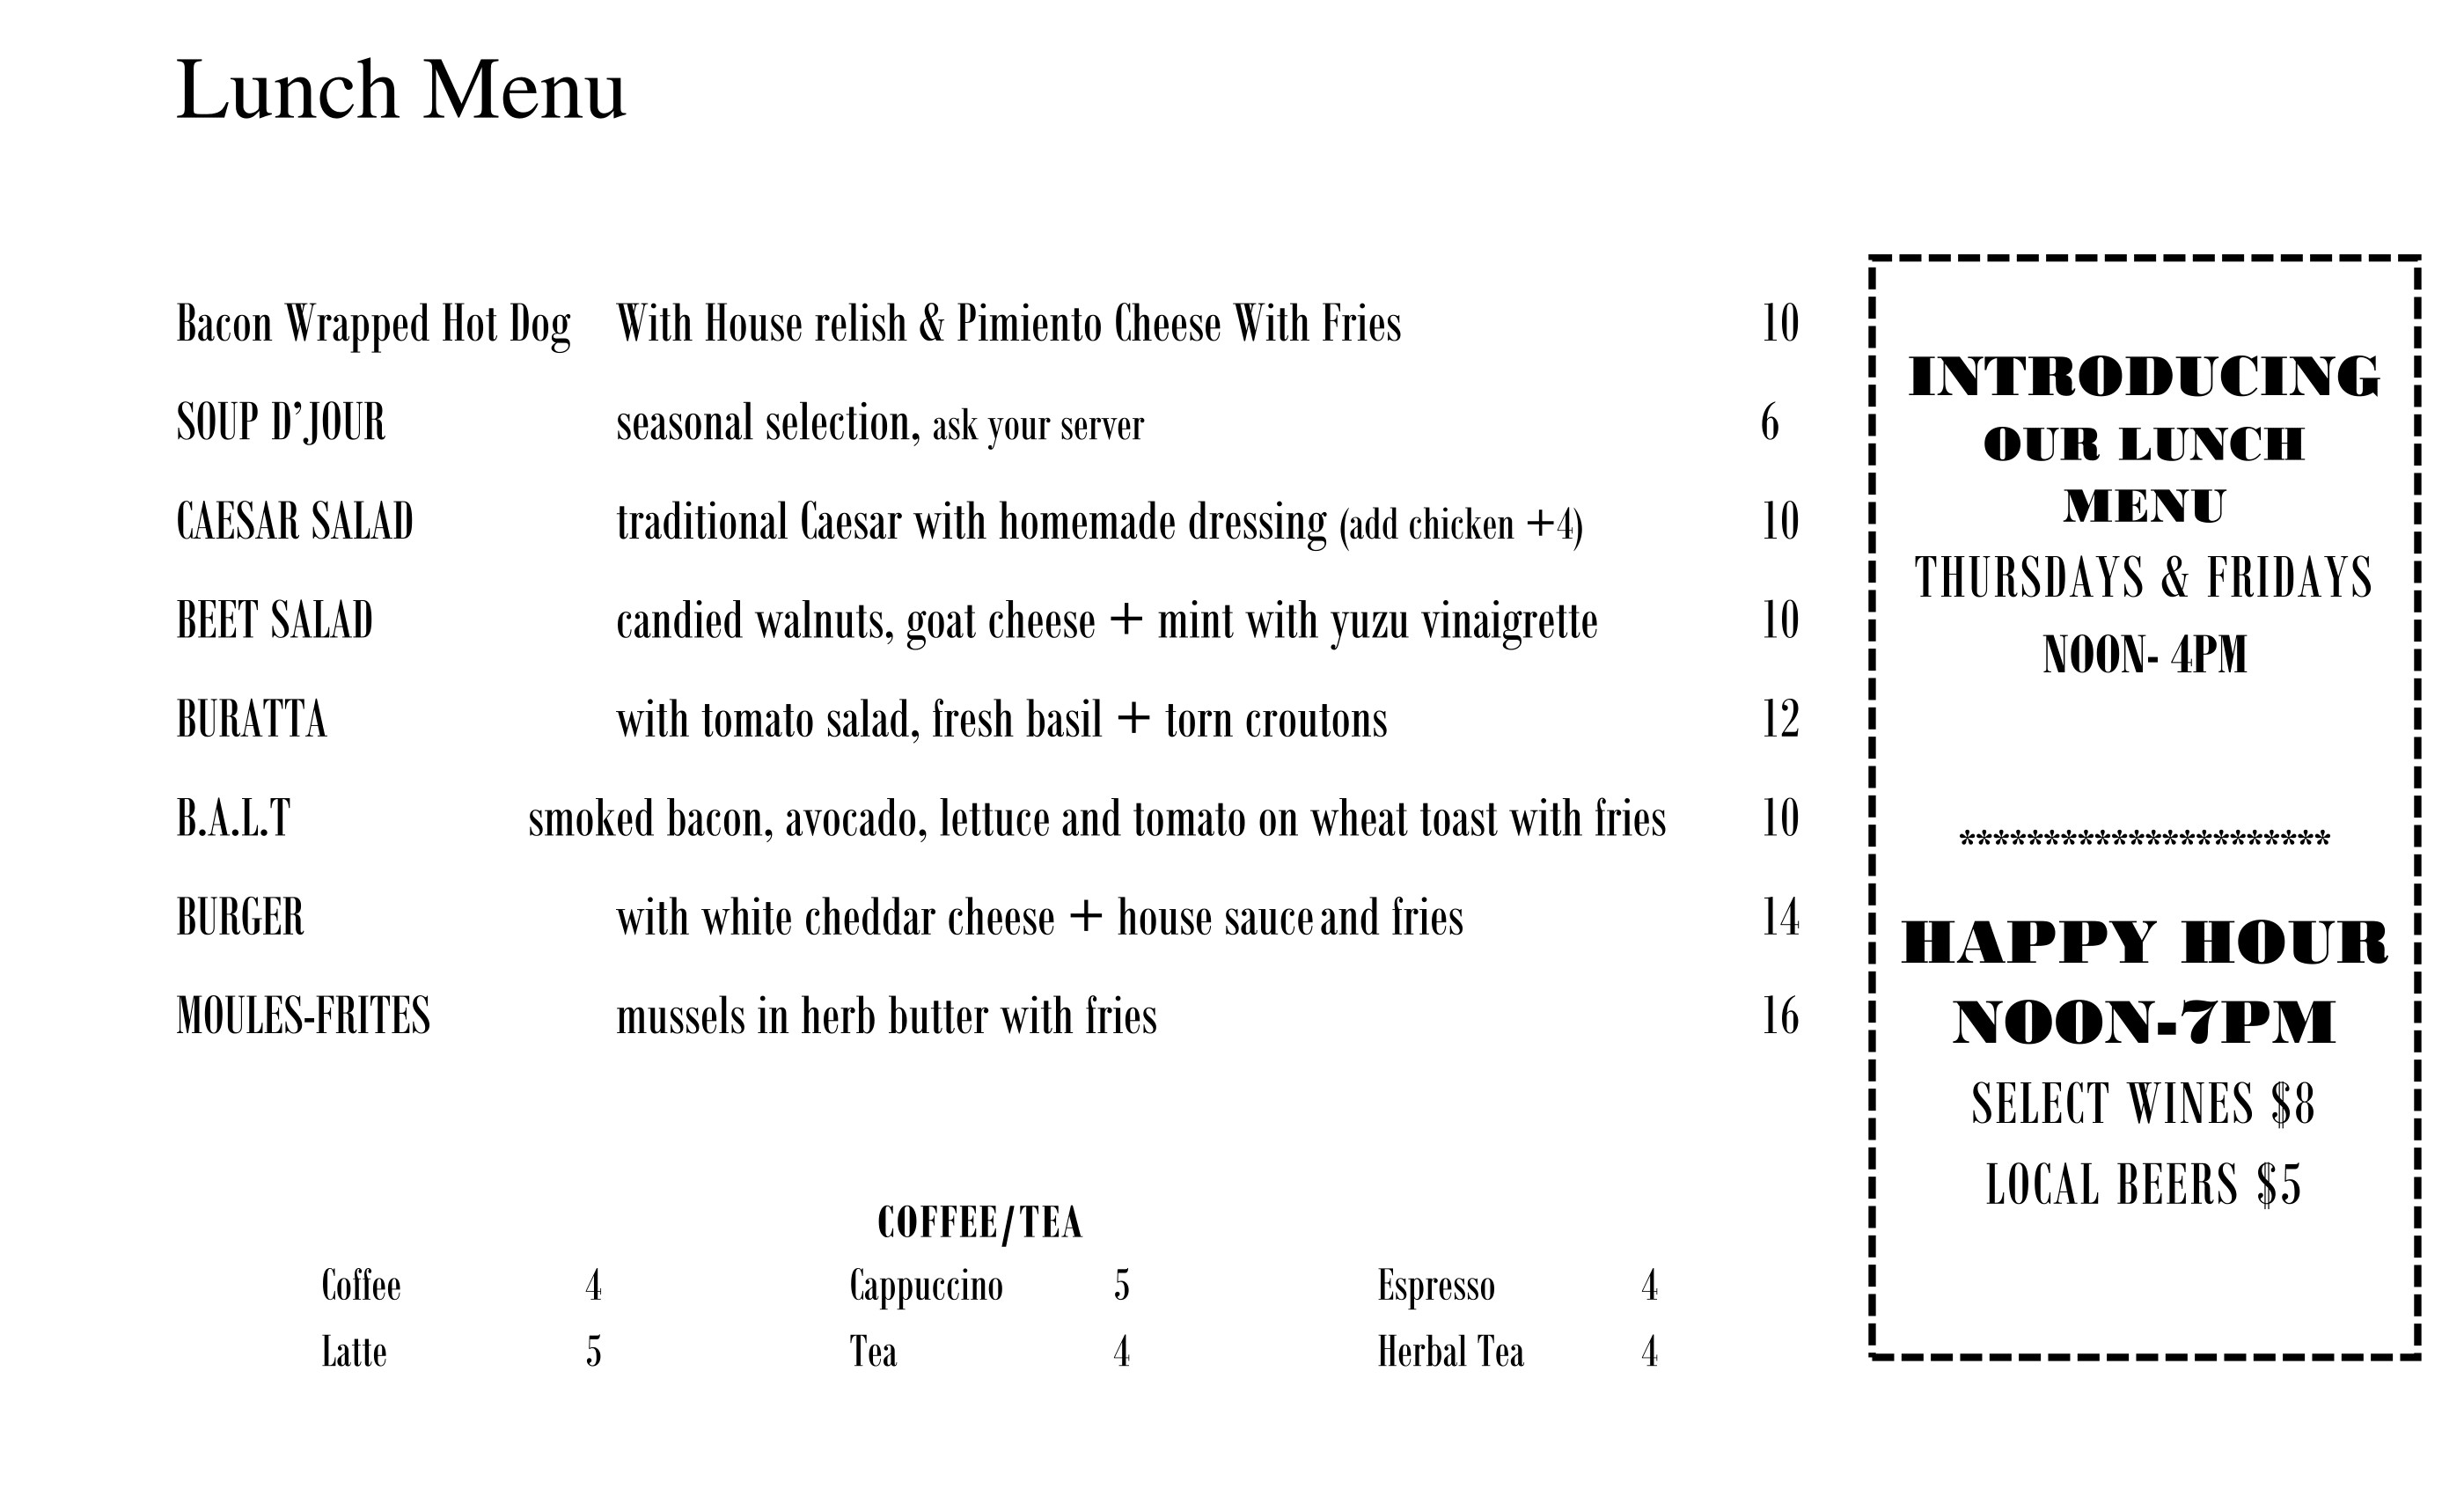 Lunch Menu (Click to Enlarge)